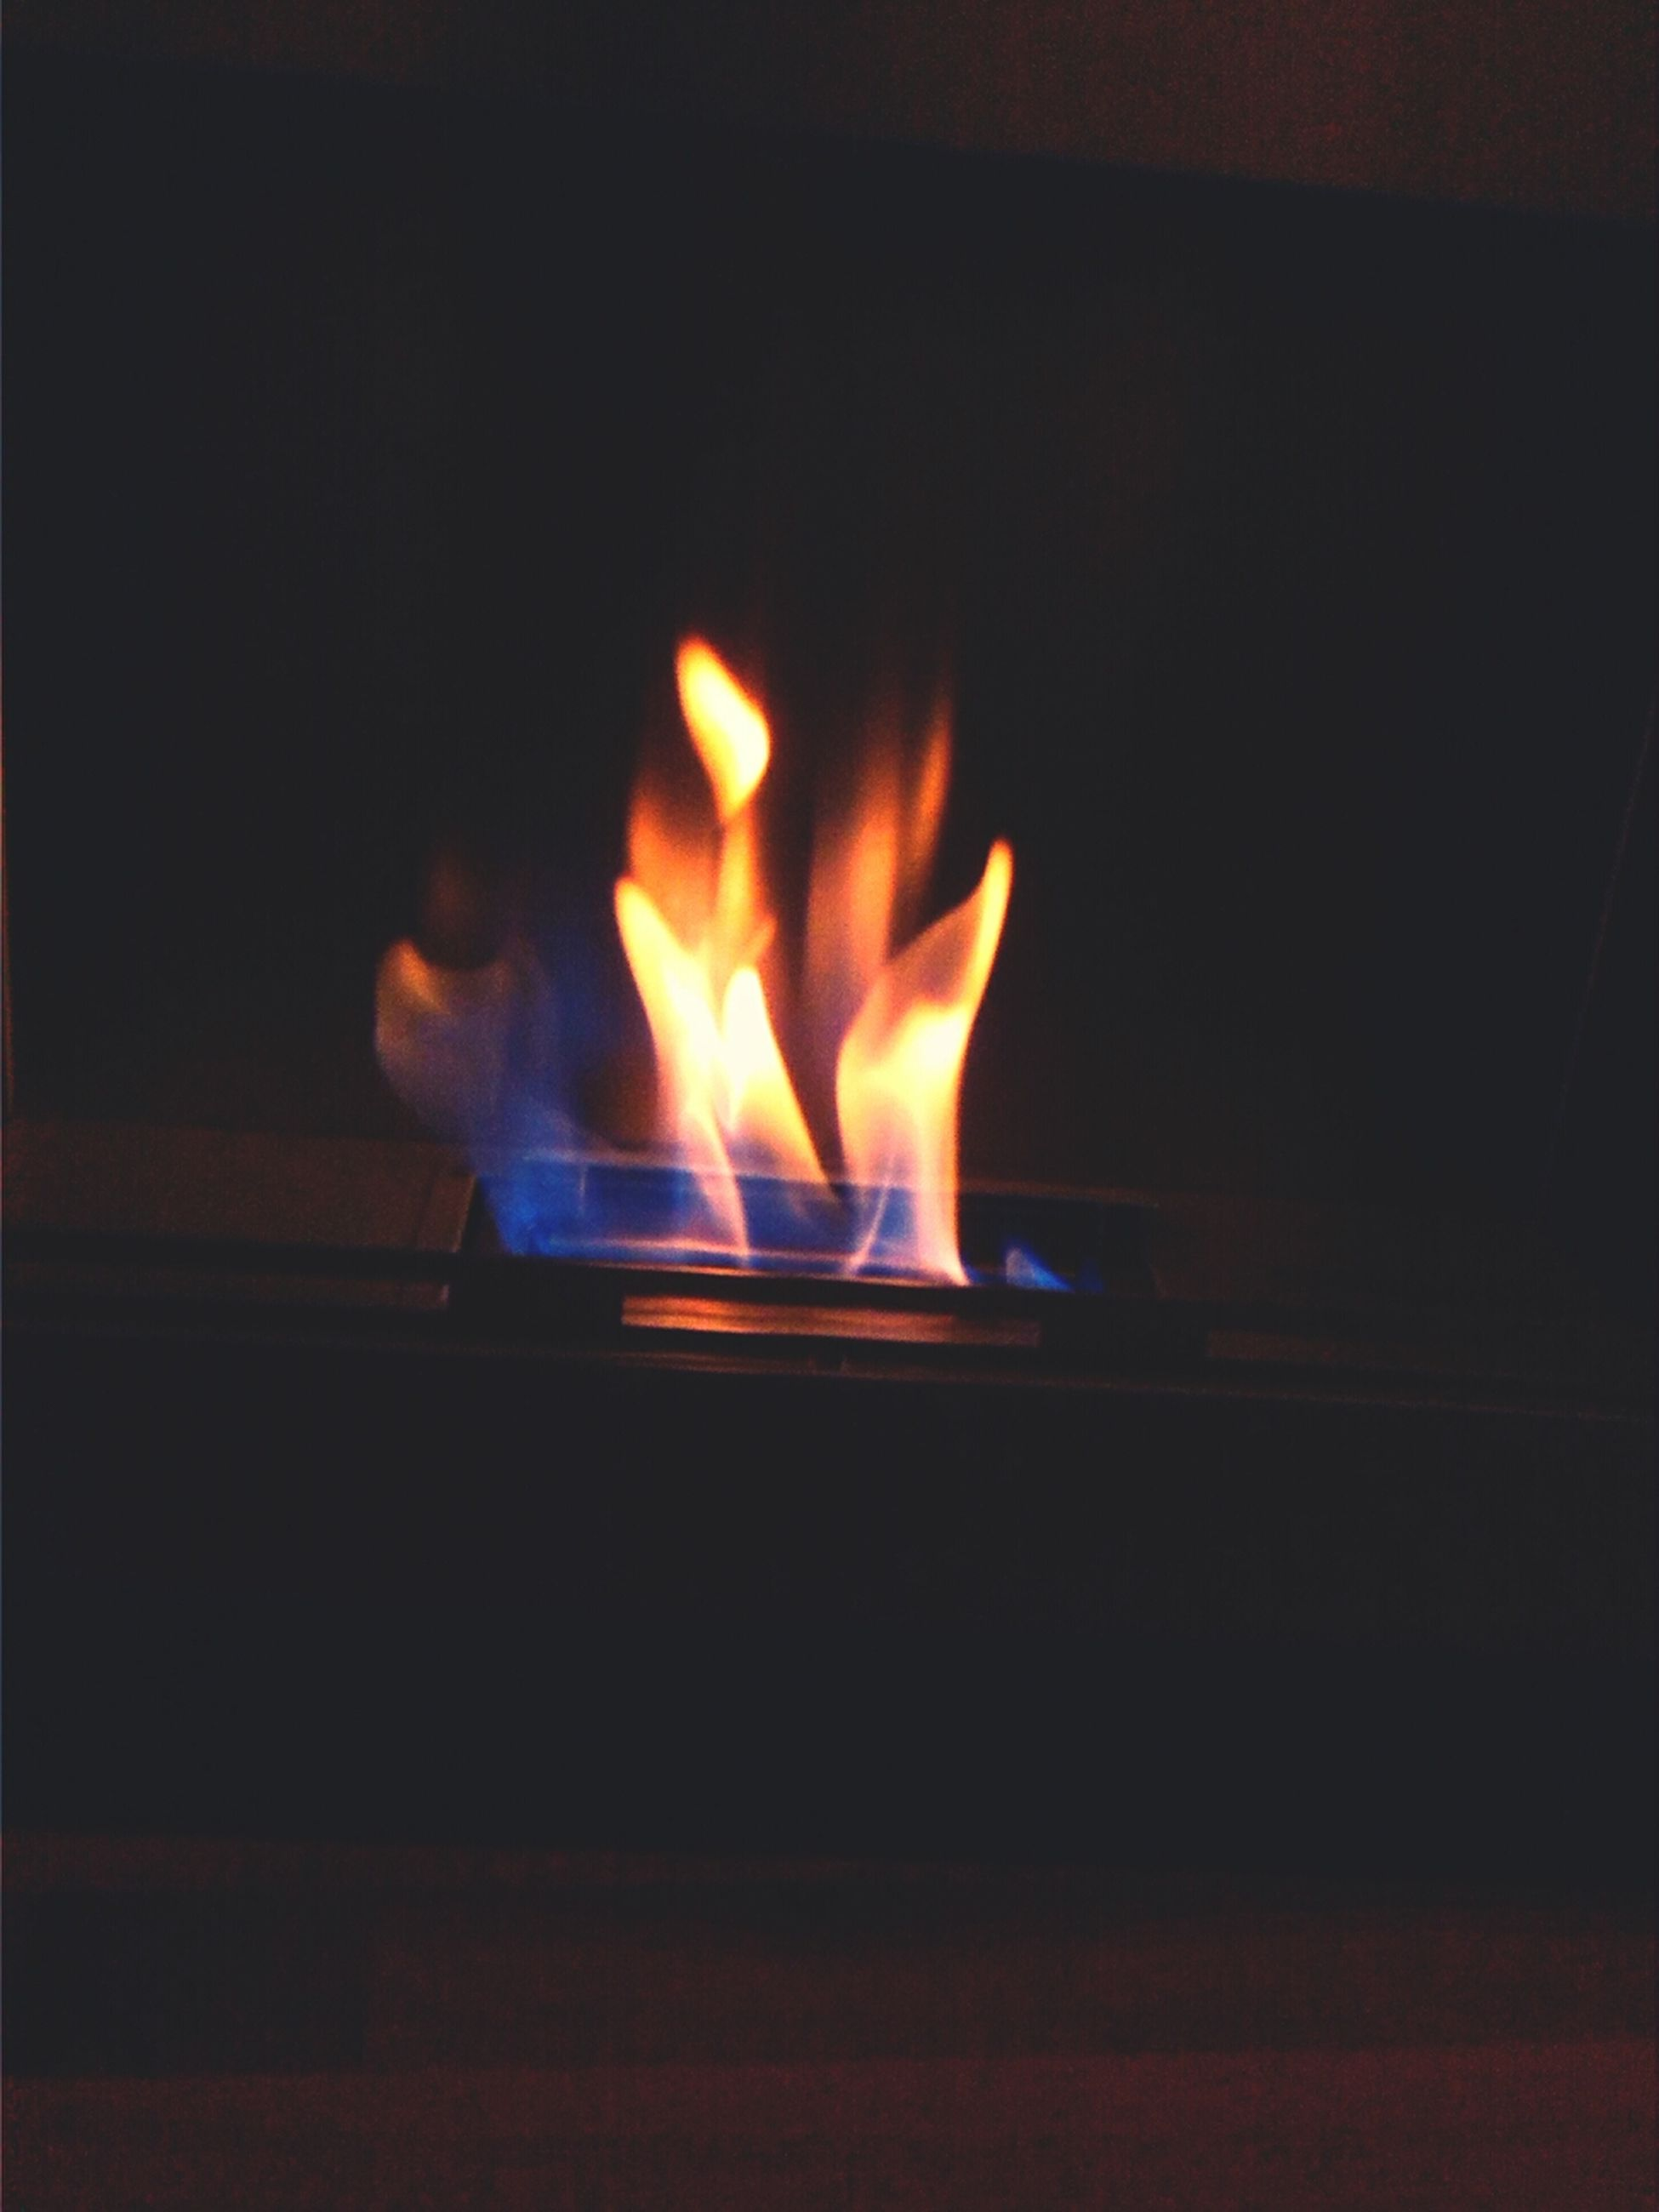 flame, burning, fire - natural phenomenon, illuminated, heat - temperature, glowing, night, dark, indoors, candle, fire, lit, copy space, close-up, light - natural phenomenon, orange color, no people, darkroom, candlelight, motion